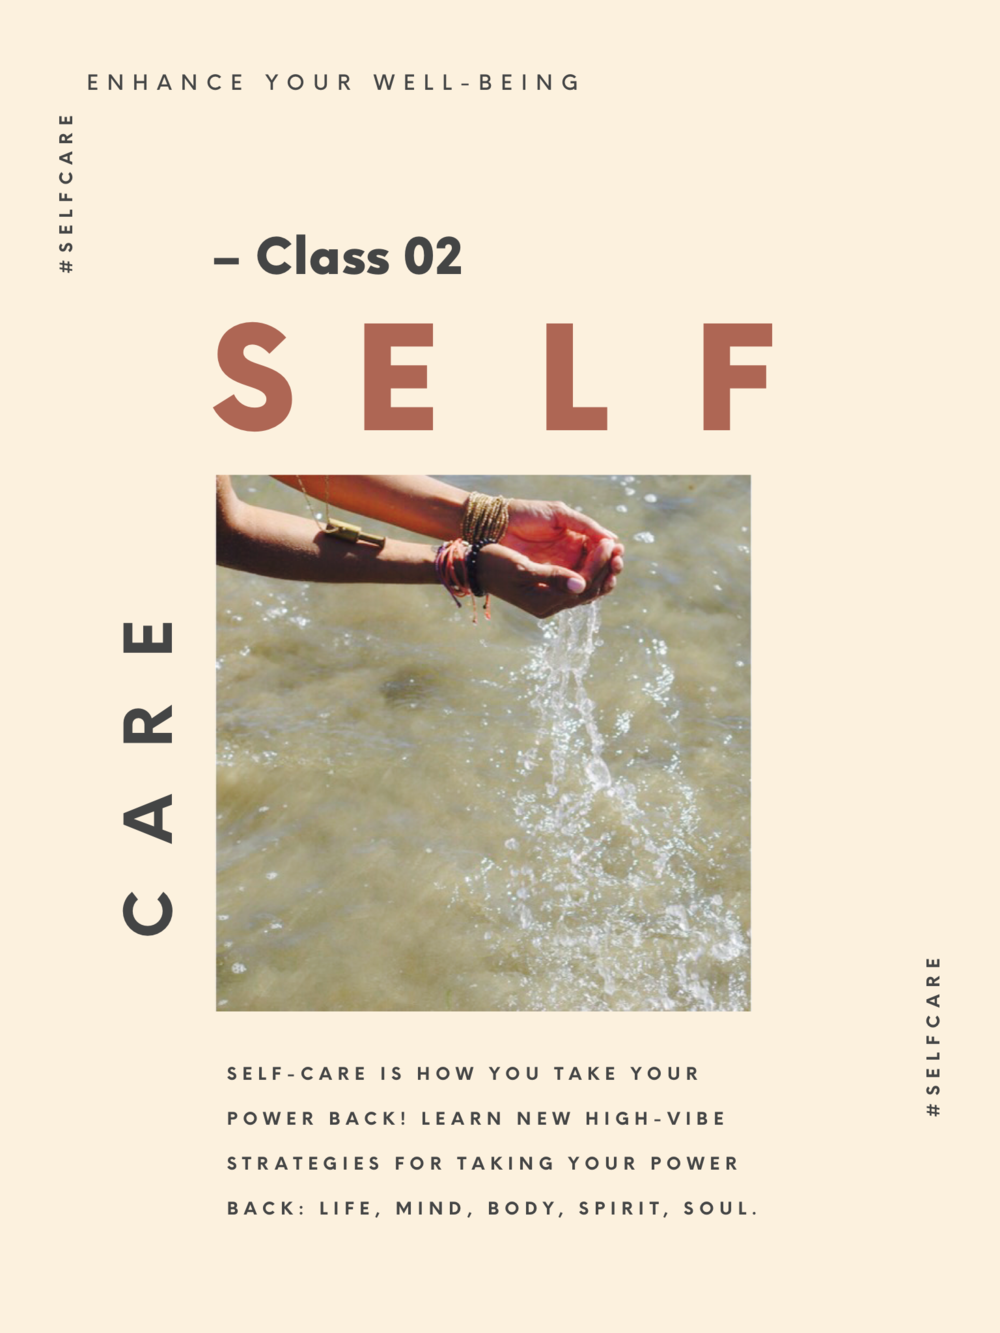 Learn new high-vibe strategies for taking your power back: life, mind, body, emotional, spirit, and soul.    - Watch belowWe'll self-assess our lives and discover what's needed to expand into higher levels of growth, consciousness, inner-beauty, potential, peace, and power.See you in class! An email with access will be sent to you on the morning of class.To Prepare: set your positive intentions for the class, be prepared to take notes if you're a note taker, bring an open heart + mind, and a cup of tea.